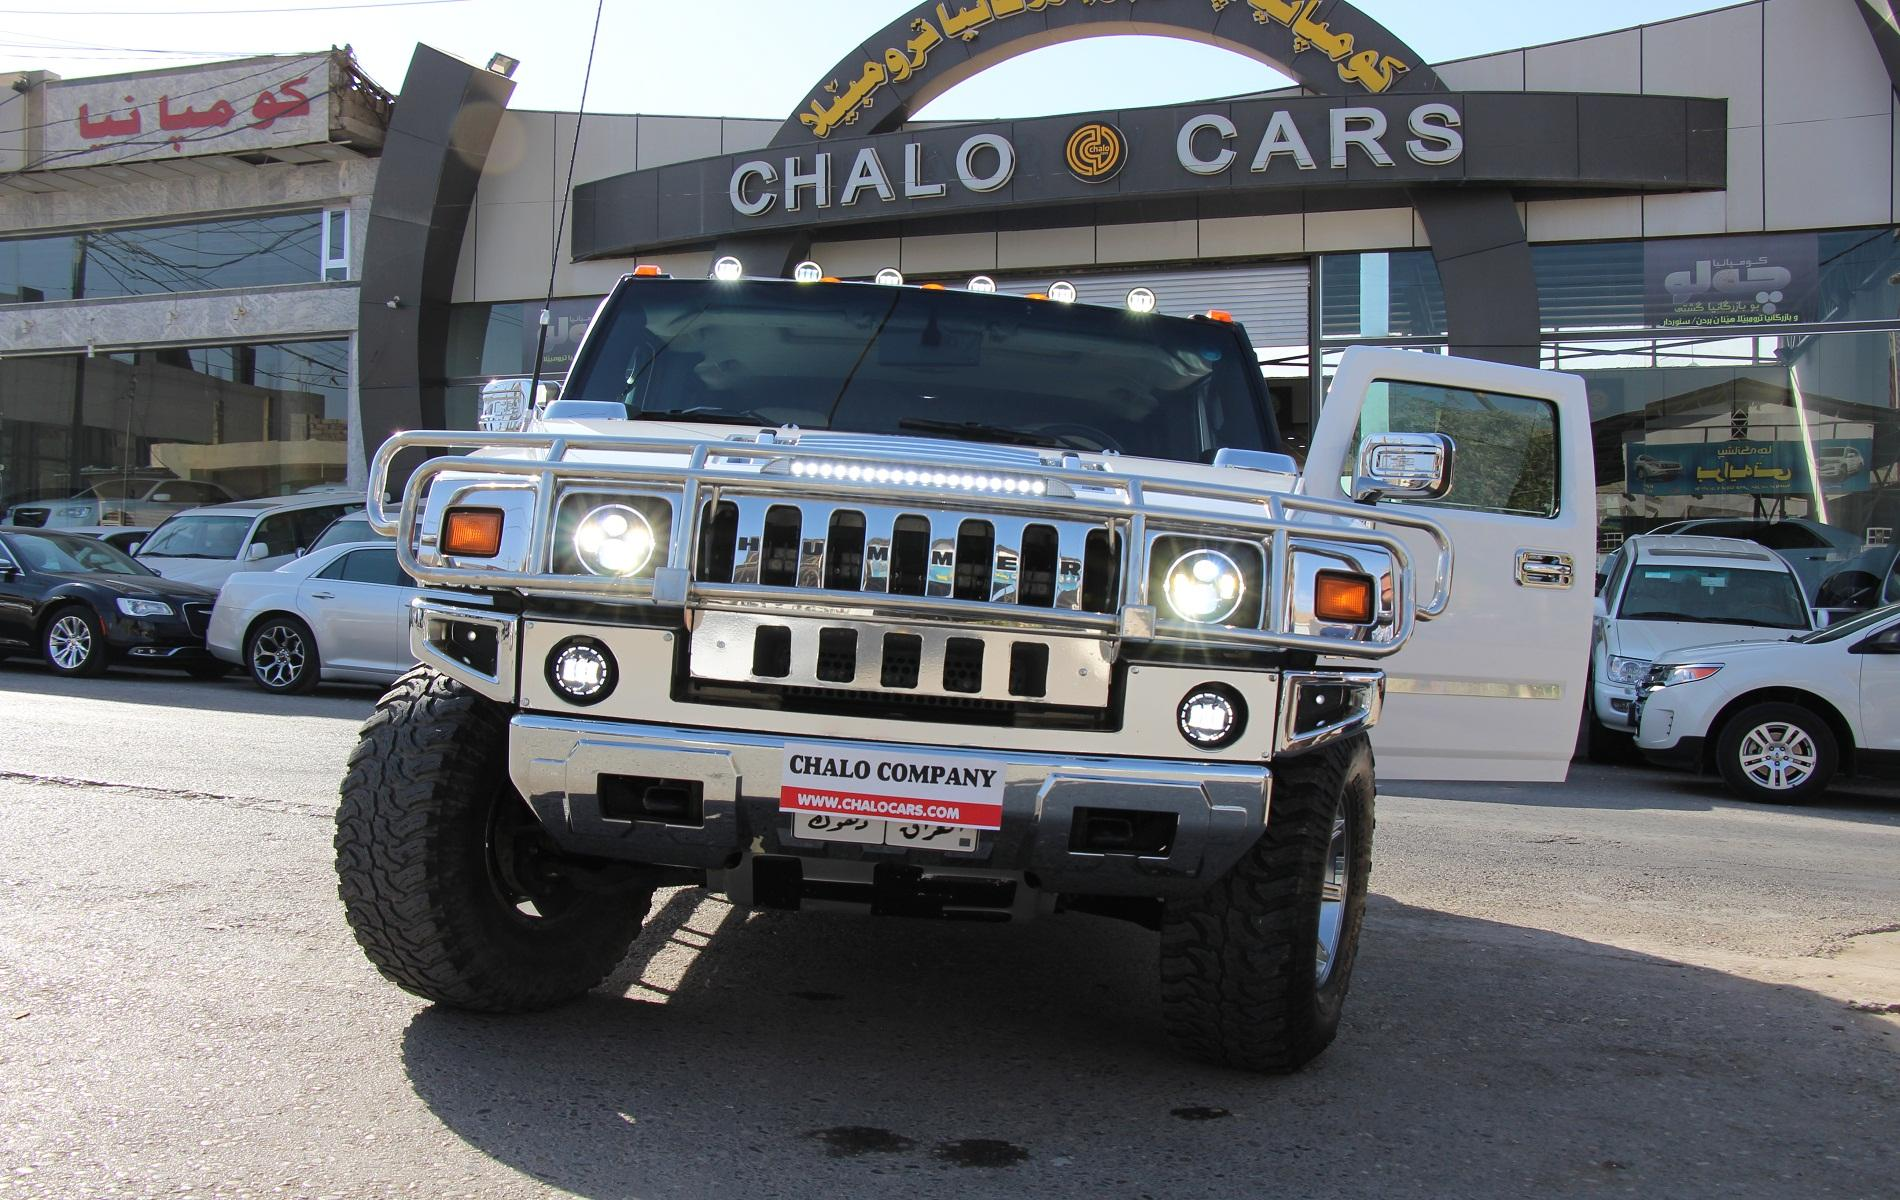 Chalo Car Details page